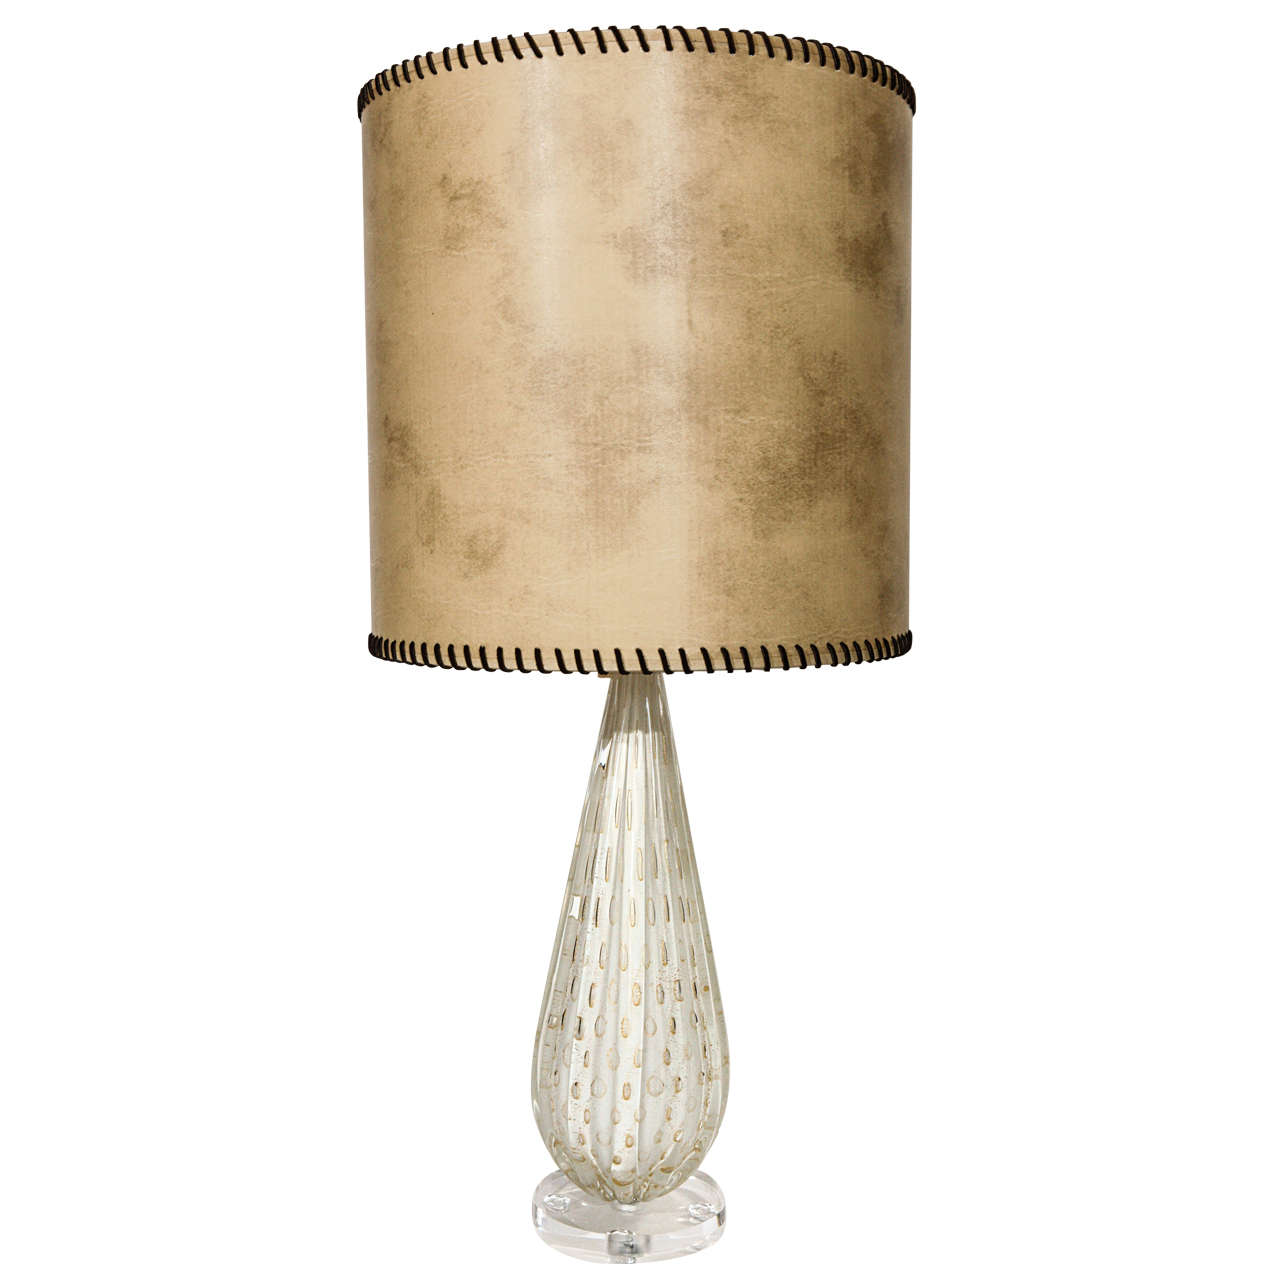 vintage murano white and gold table lamp at 1stdibs. Black Bedroom Furniture Sets. Home Design Ideas